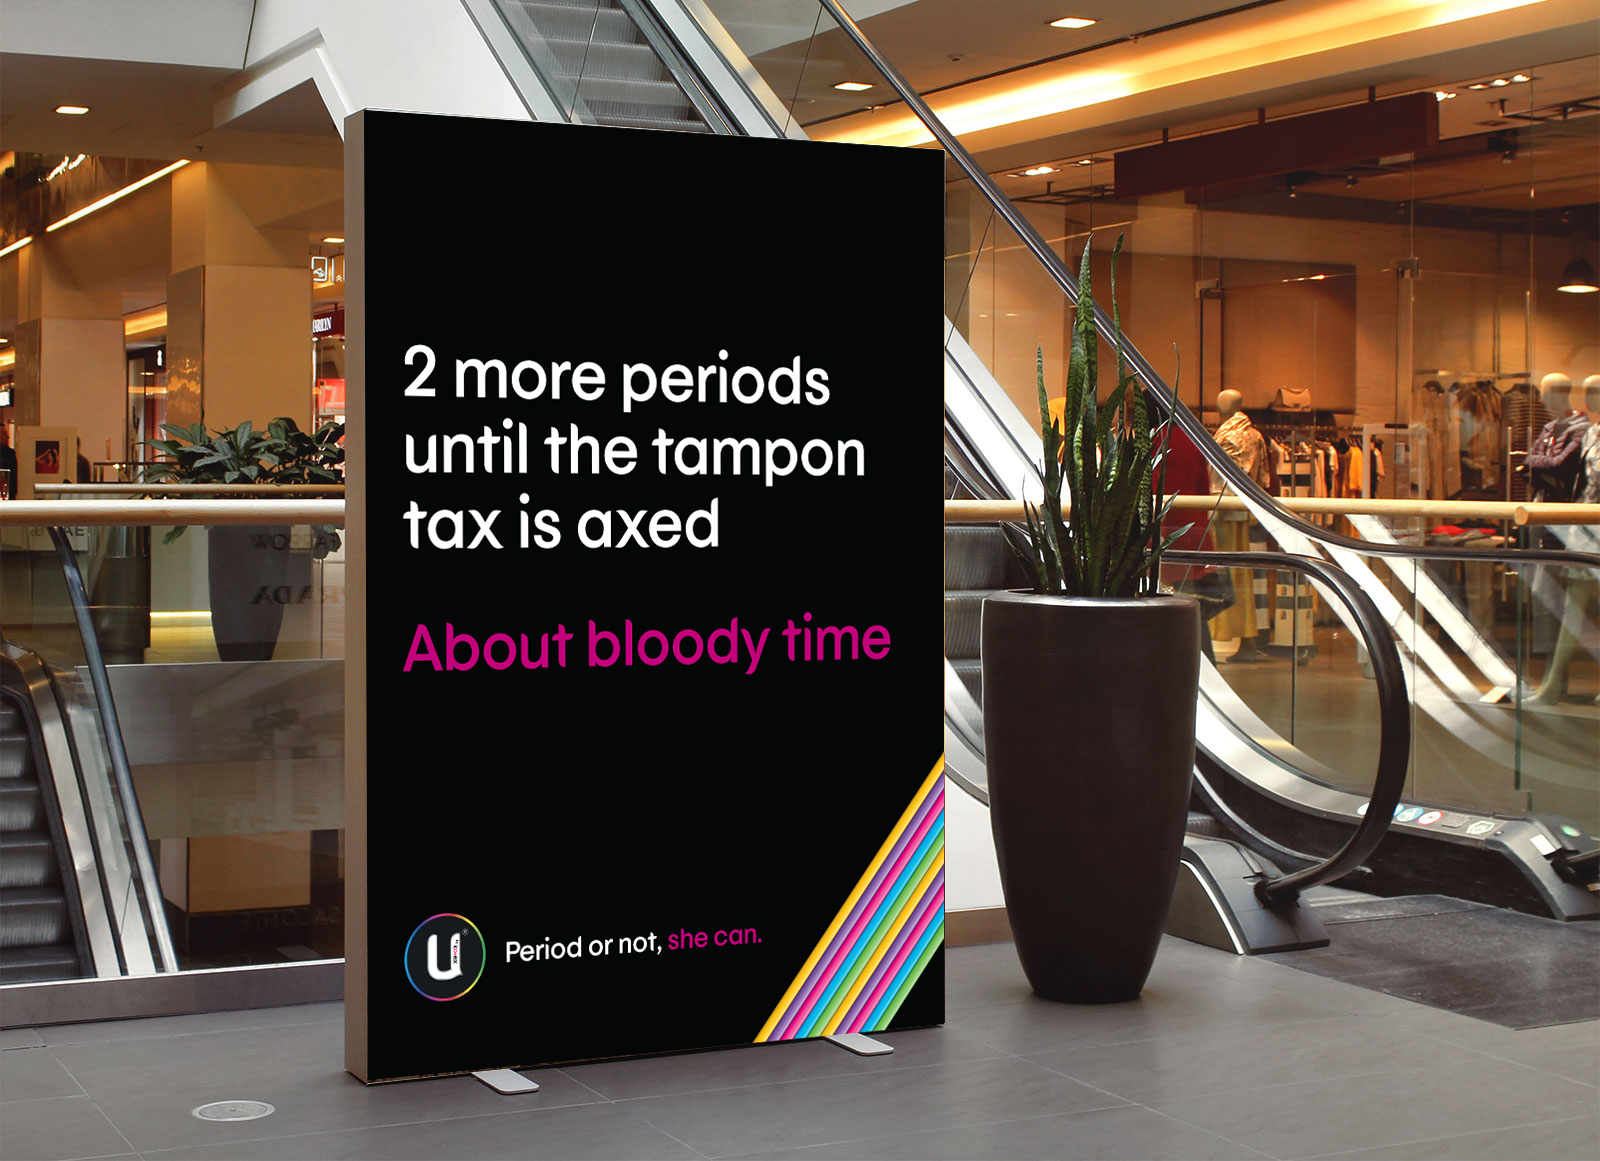 Strategically placing these outside supermarkets and pharmacies, we would count down how many periods between now and when the tax would be lifted.